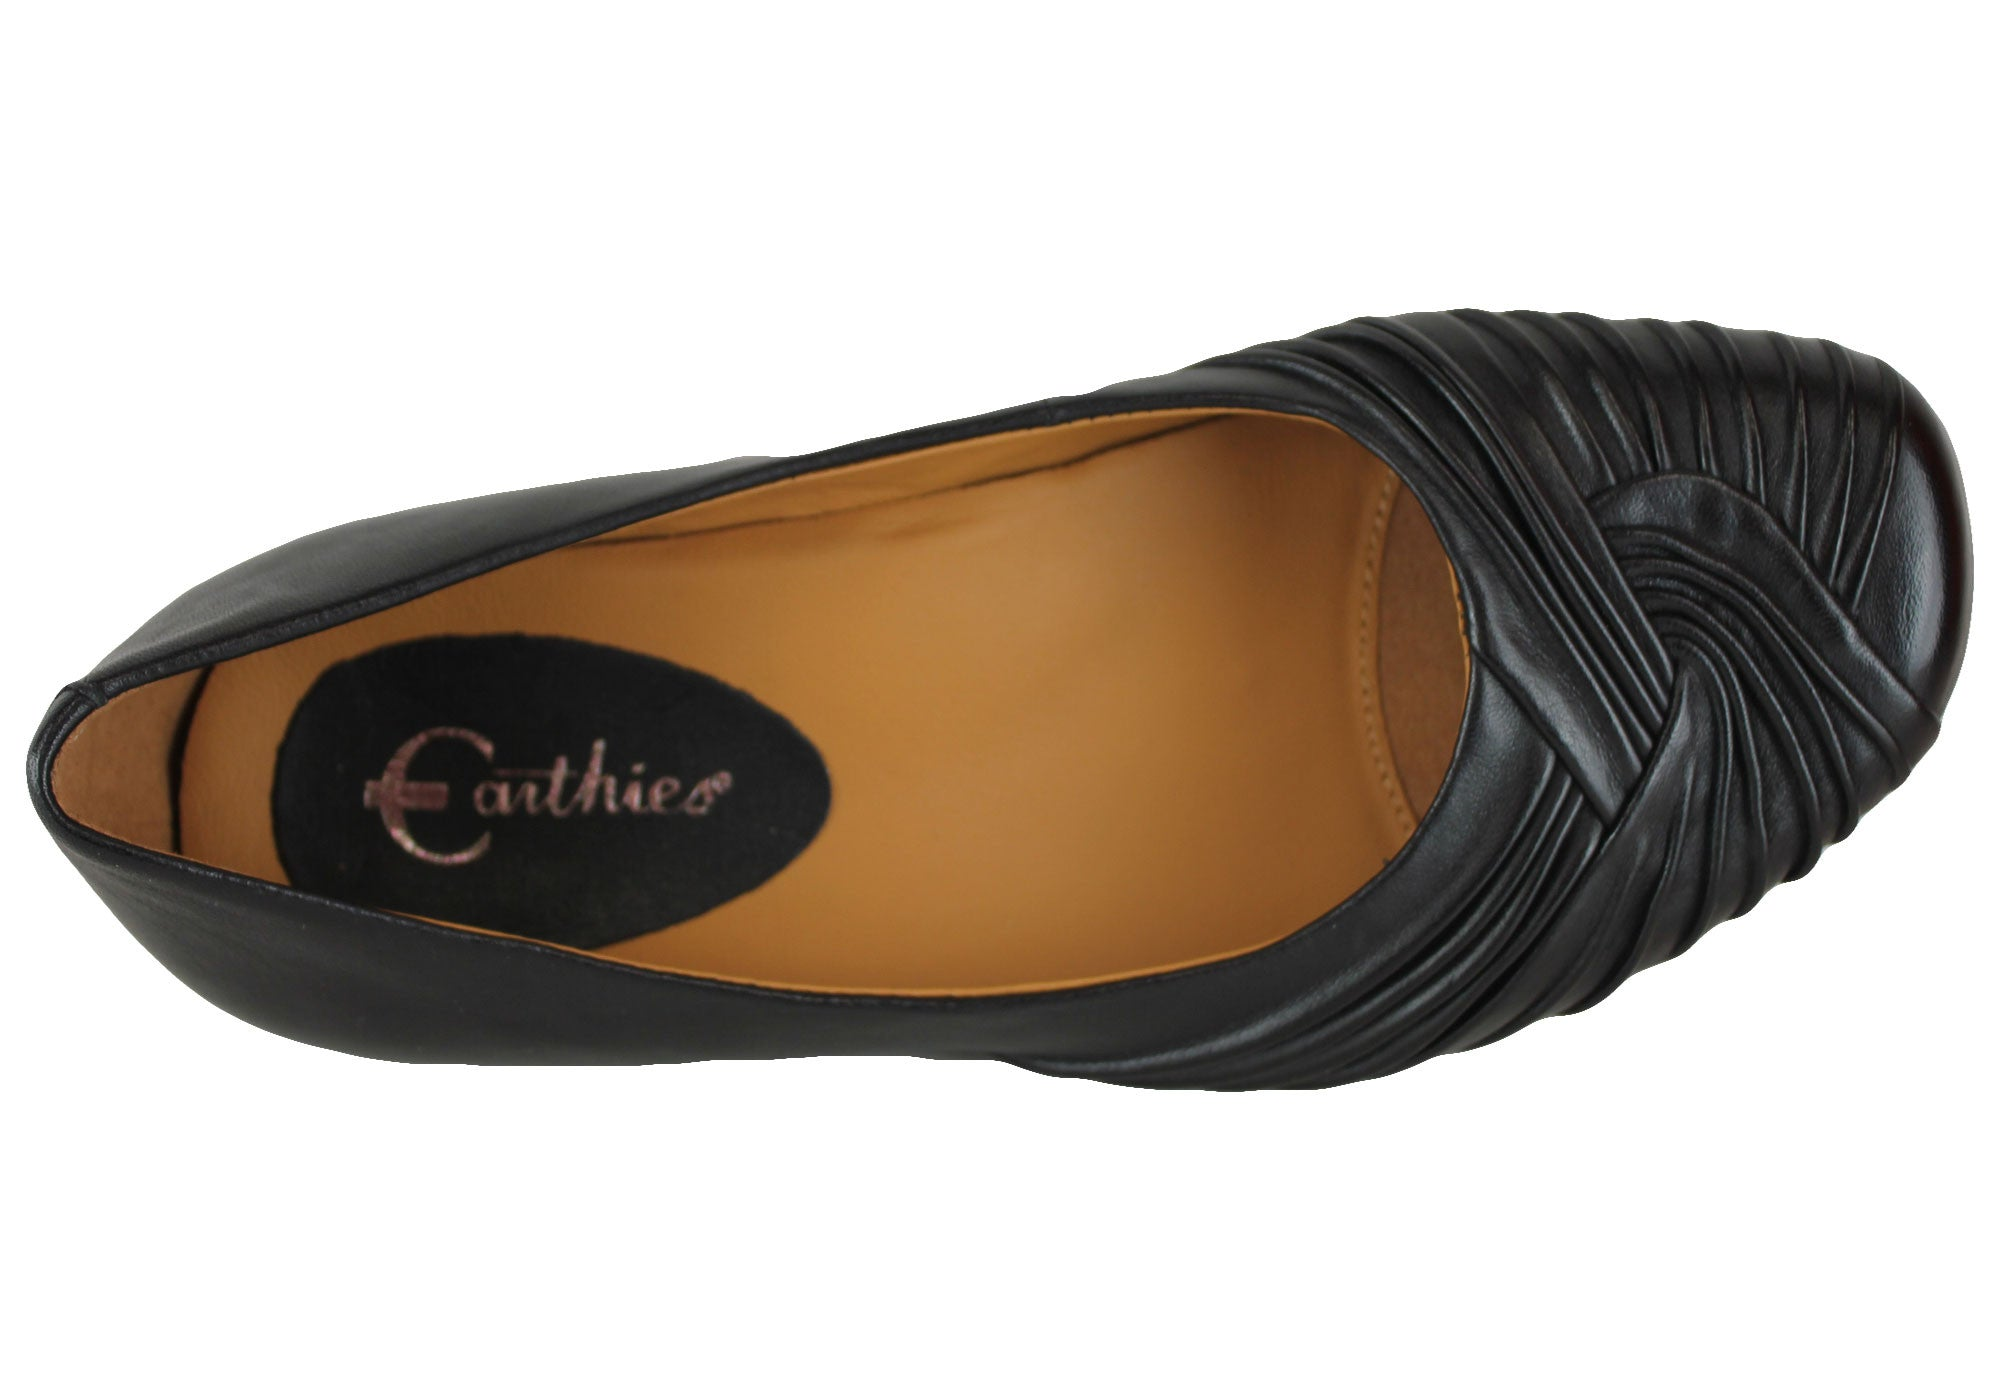 Earthies Vanya Womens Leather Comfortable Flats